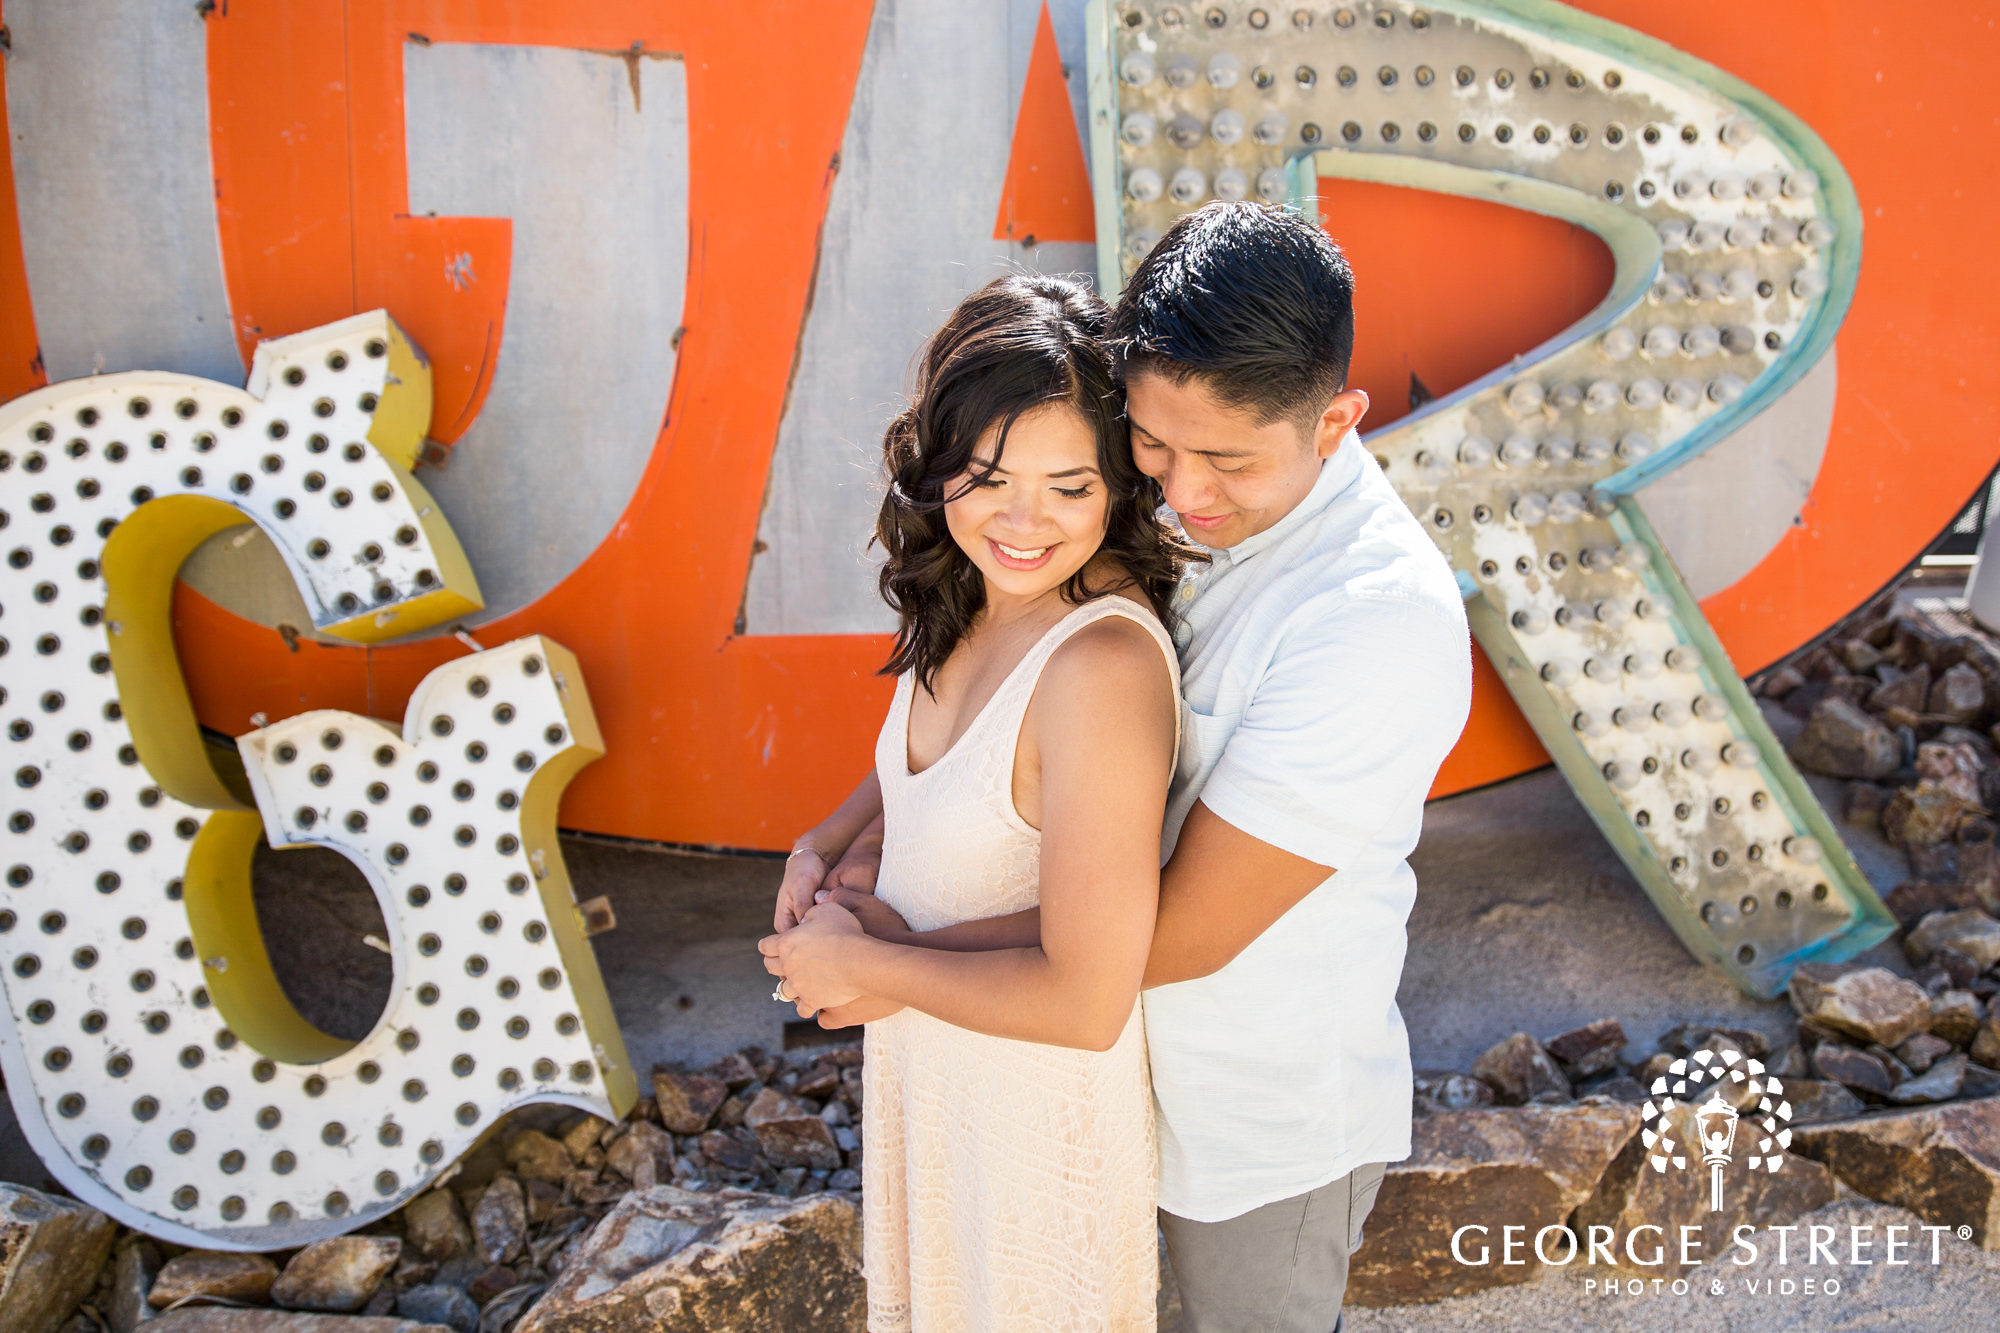 las vegas neon signs engagement photography 7